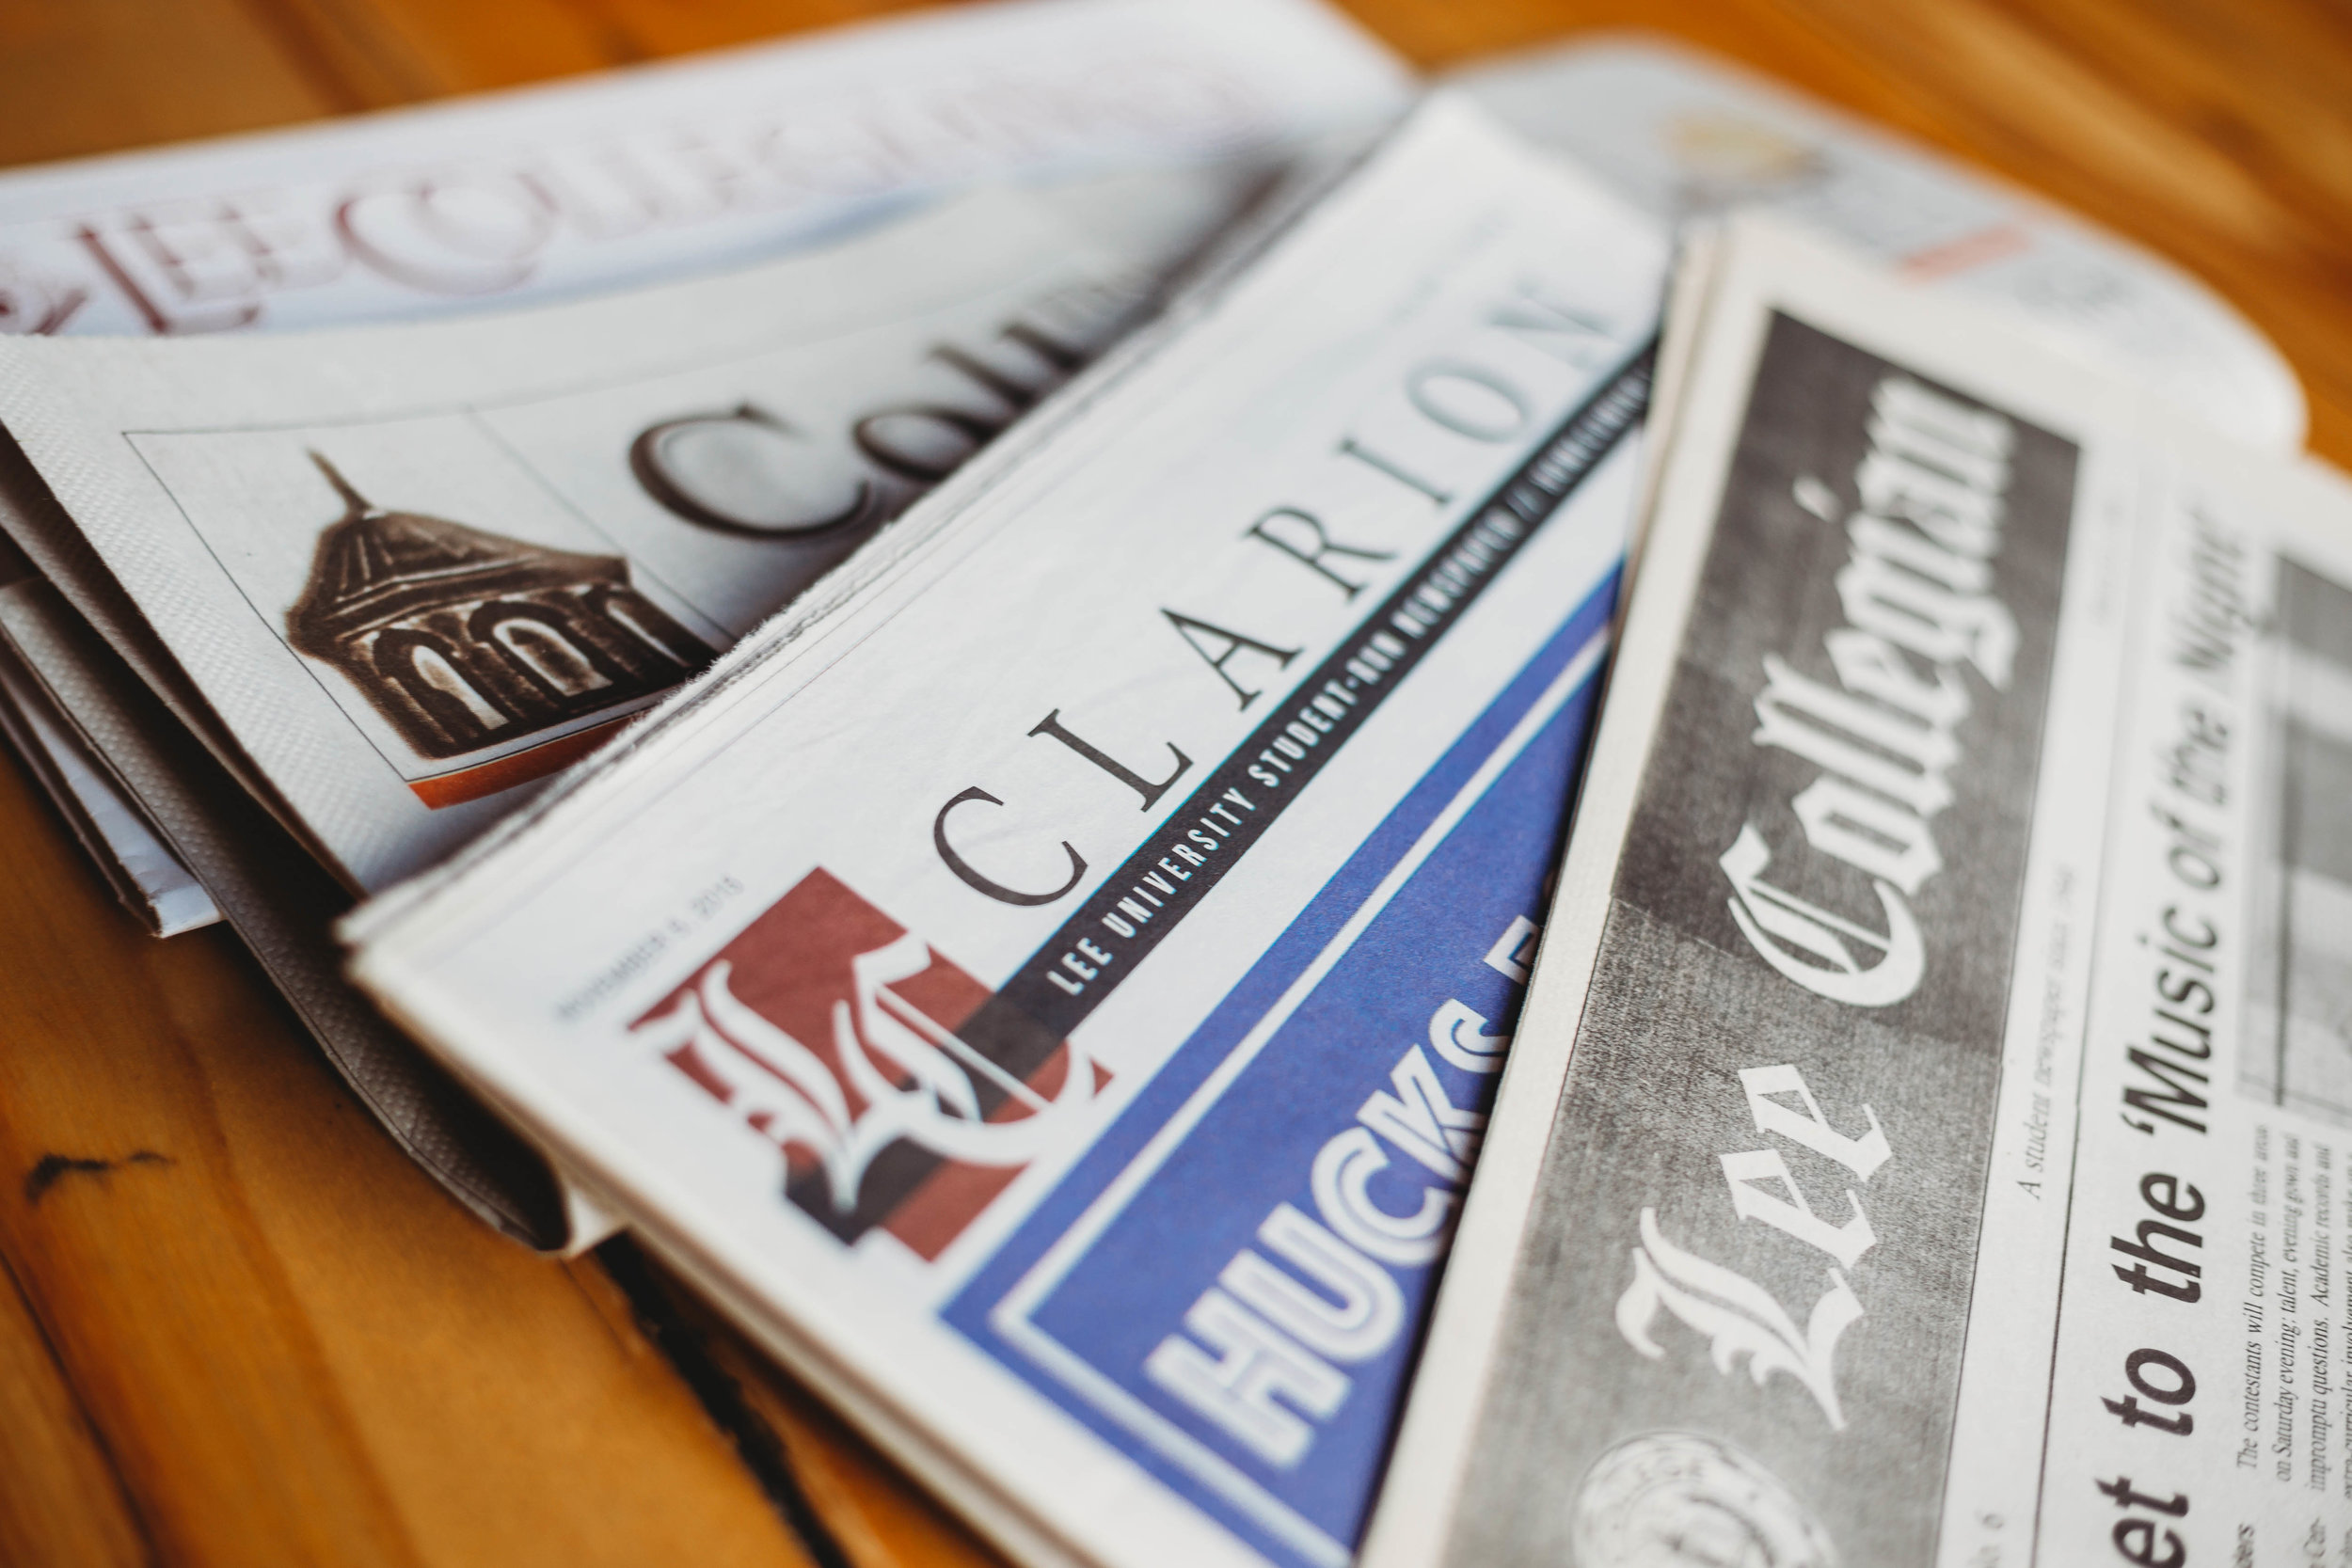 """- Following the school's move to Cleveland, the paper was renamed """"The Clarion"""" before changing to a monthly magazine format titled """"Omnibus"""" in the 1980s. The journal was again renamed the """"Lee Collegian"""" in 1986 and later returned to the traditional name """"The Lee Clarion"""" in spring 2004."""